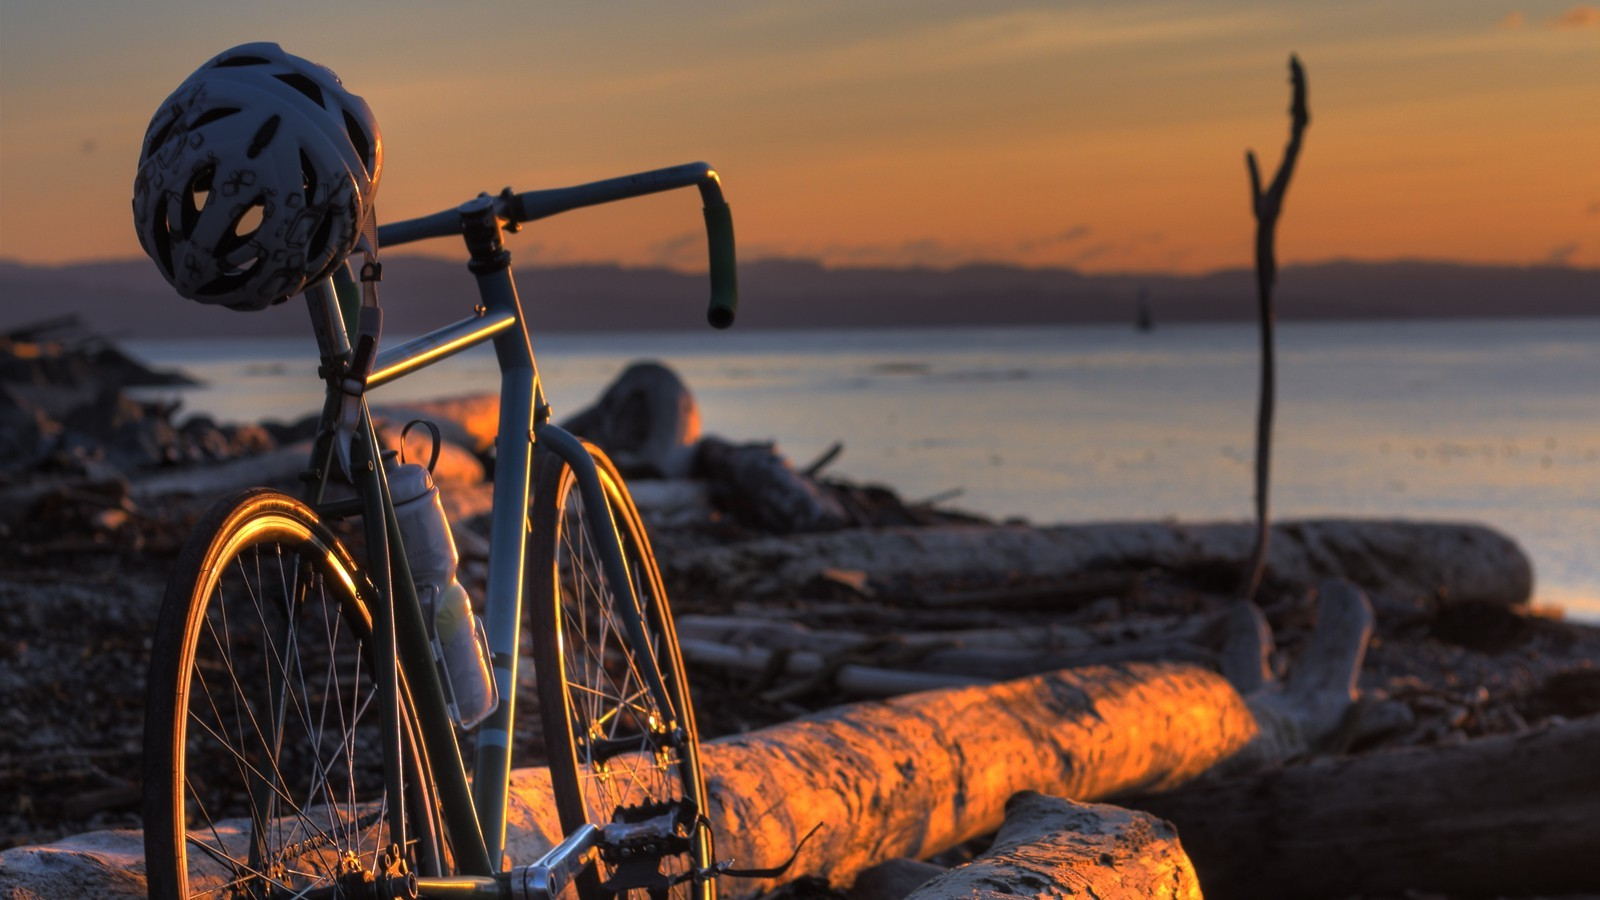 Girls With Bike Wallpapers For Mobile Bicycle Landscape Wood Wallpapers Hd Desktop And